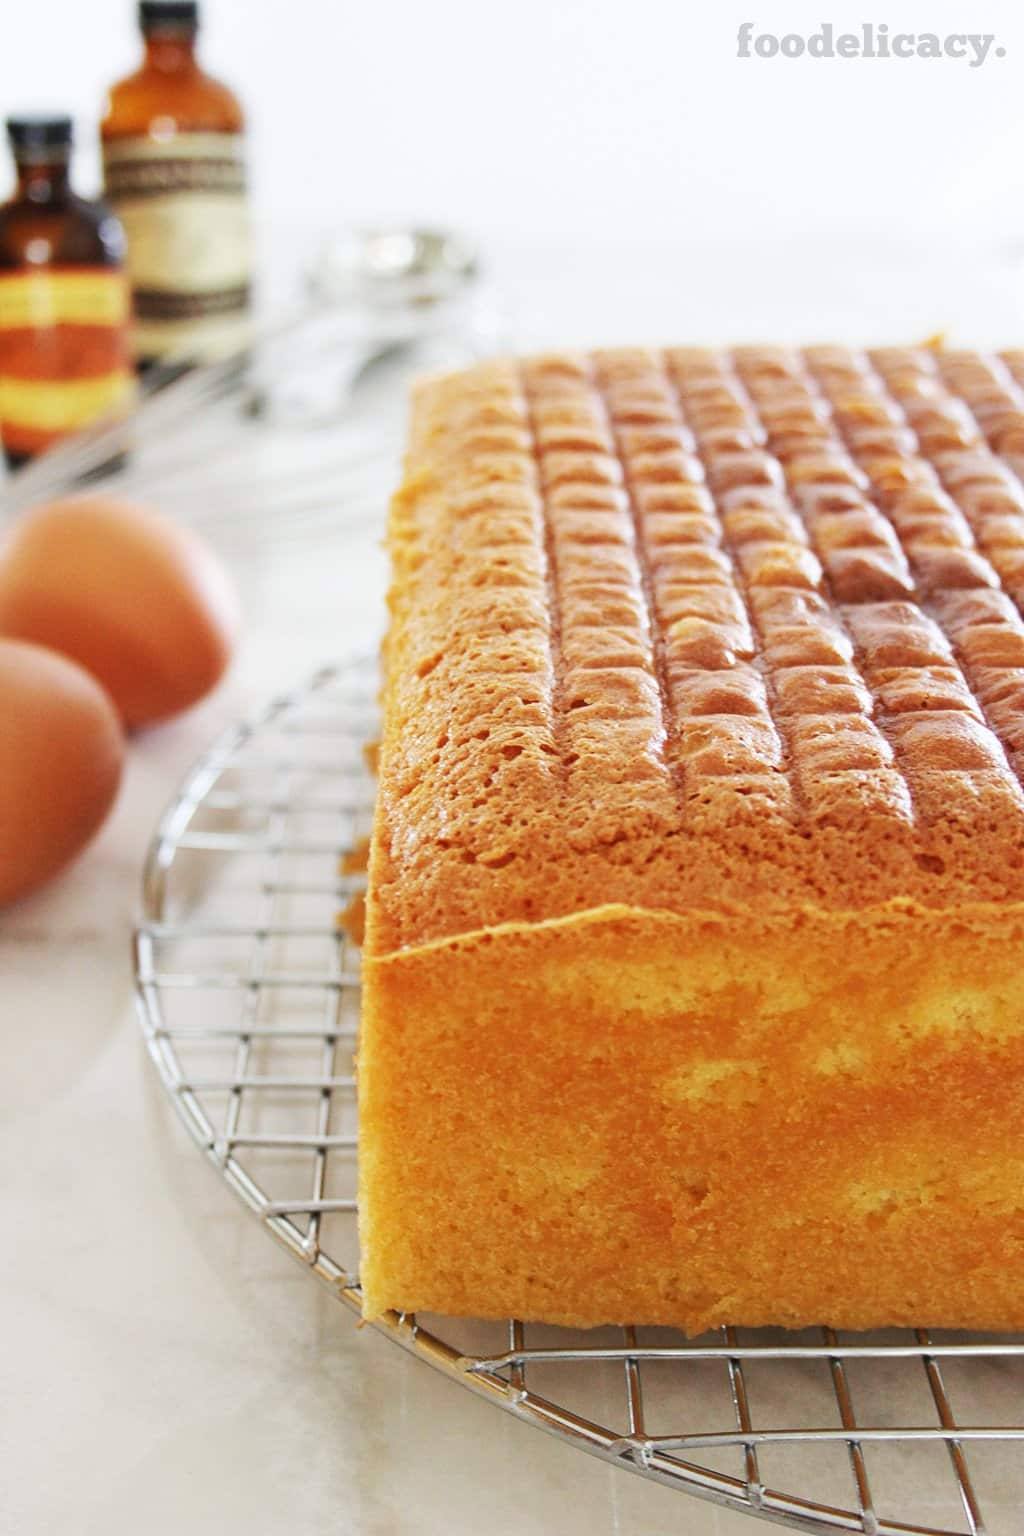 Very rich butter cake set to cool on a wire rack